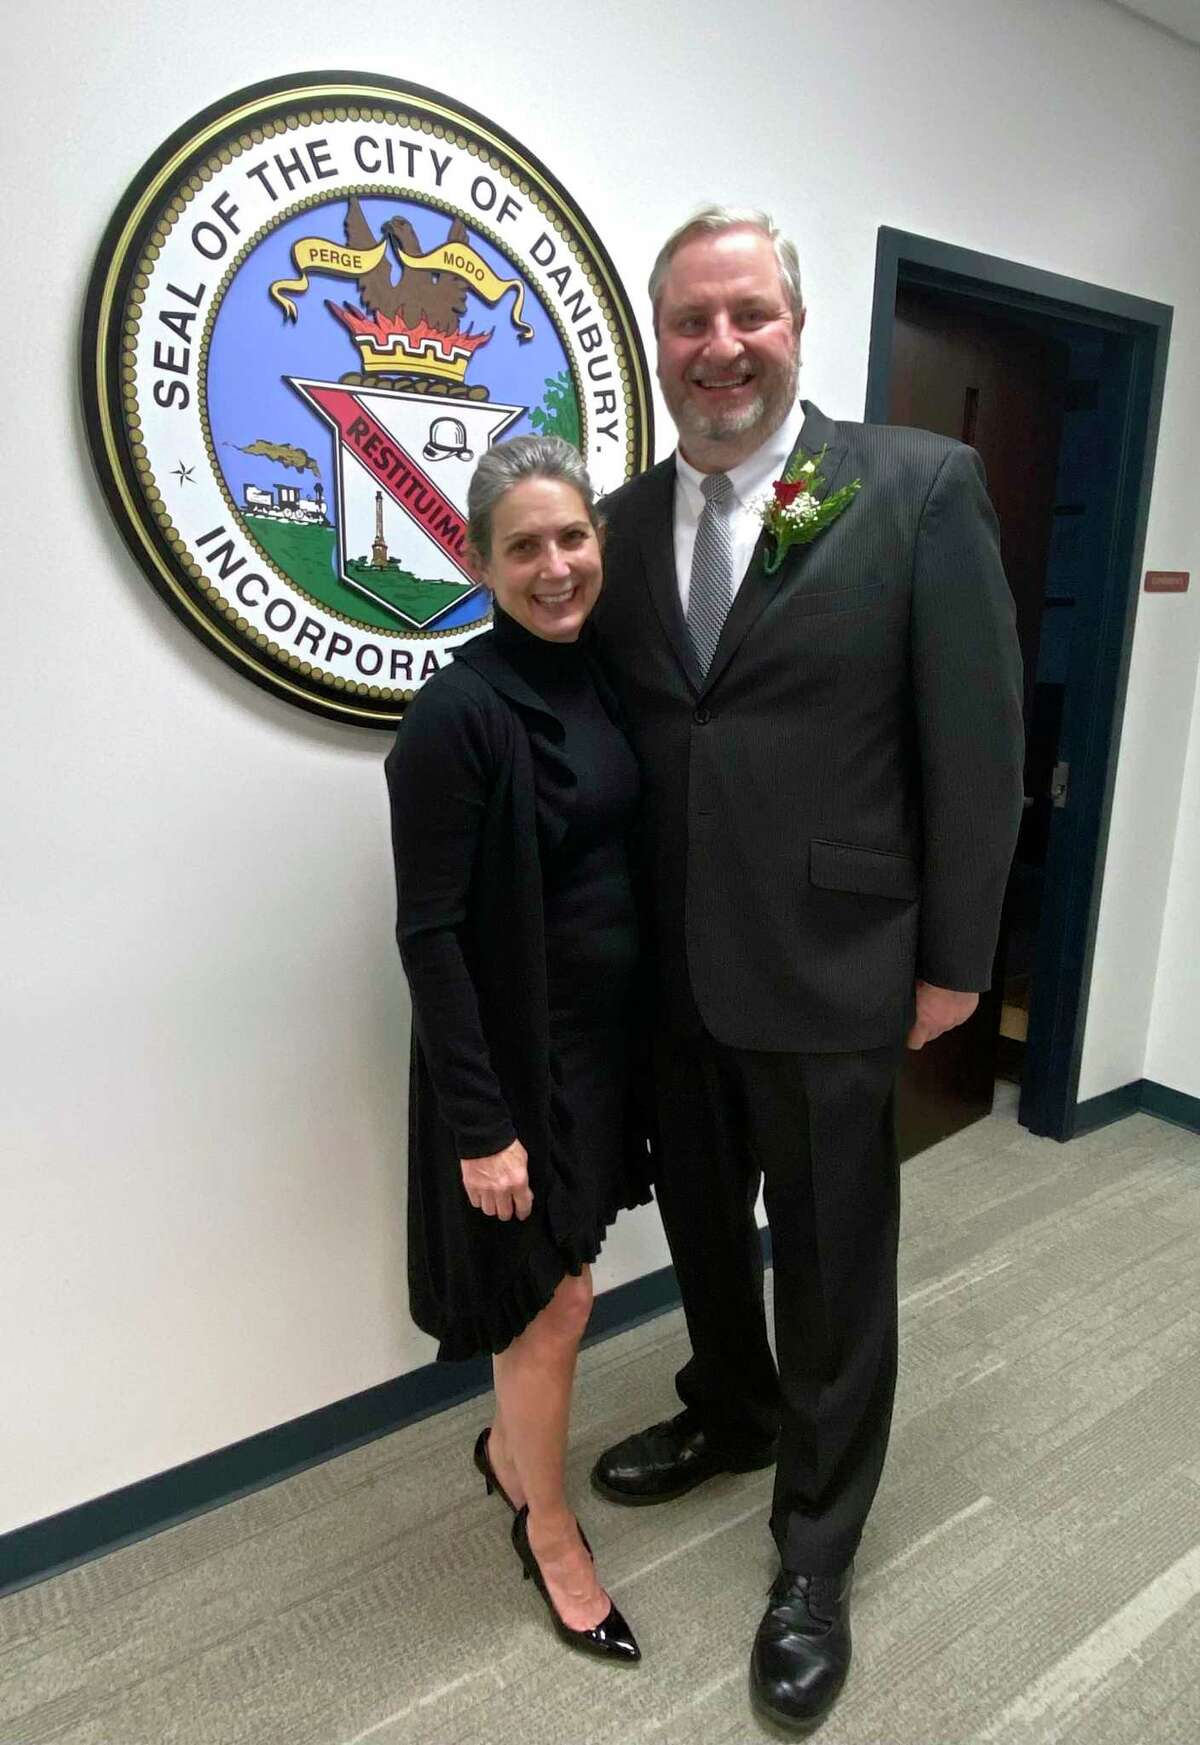 Joseph M. Cavo, right, was sworn in as Mayor of the City of Danbury, with his wife Liz Cavo. Wednesday, December 16, 2020, in Danbury, Conn.